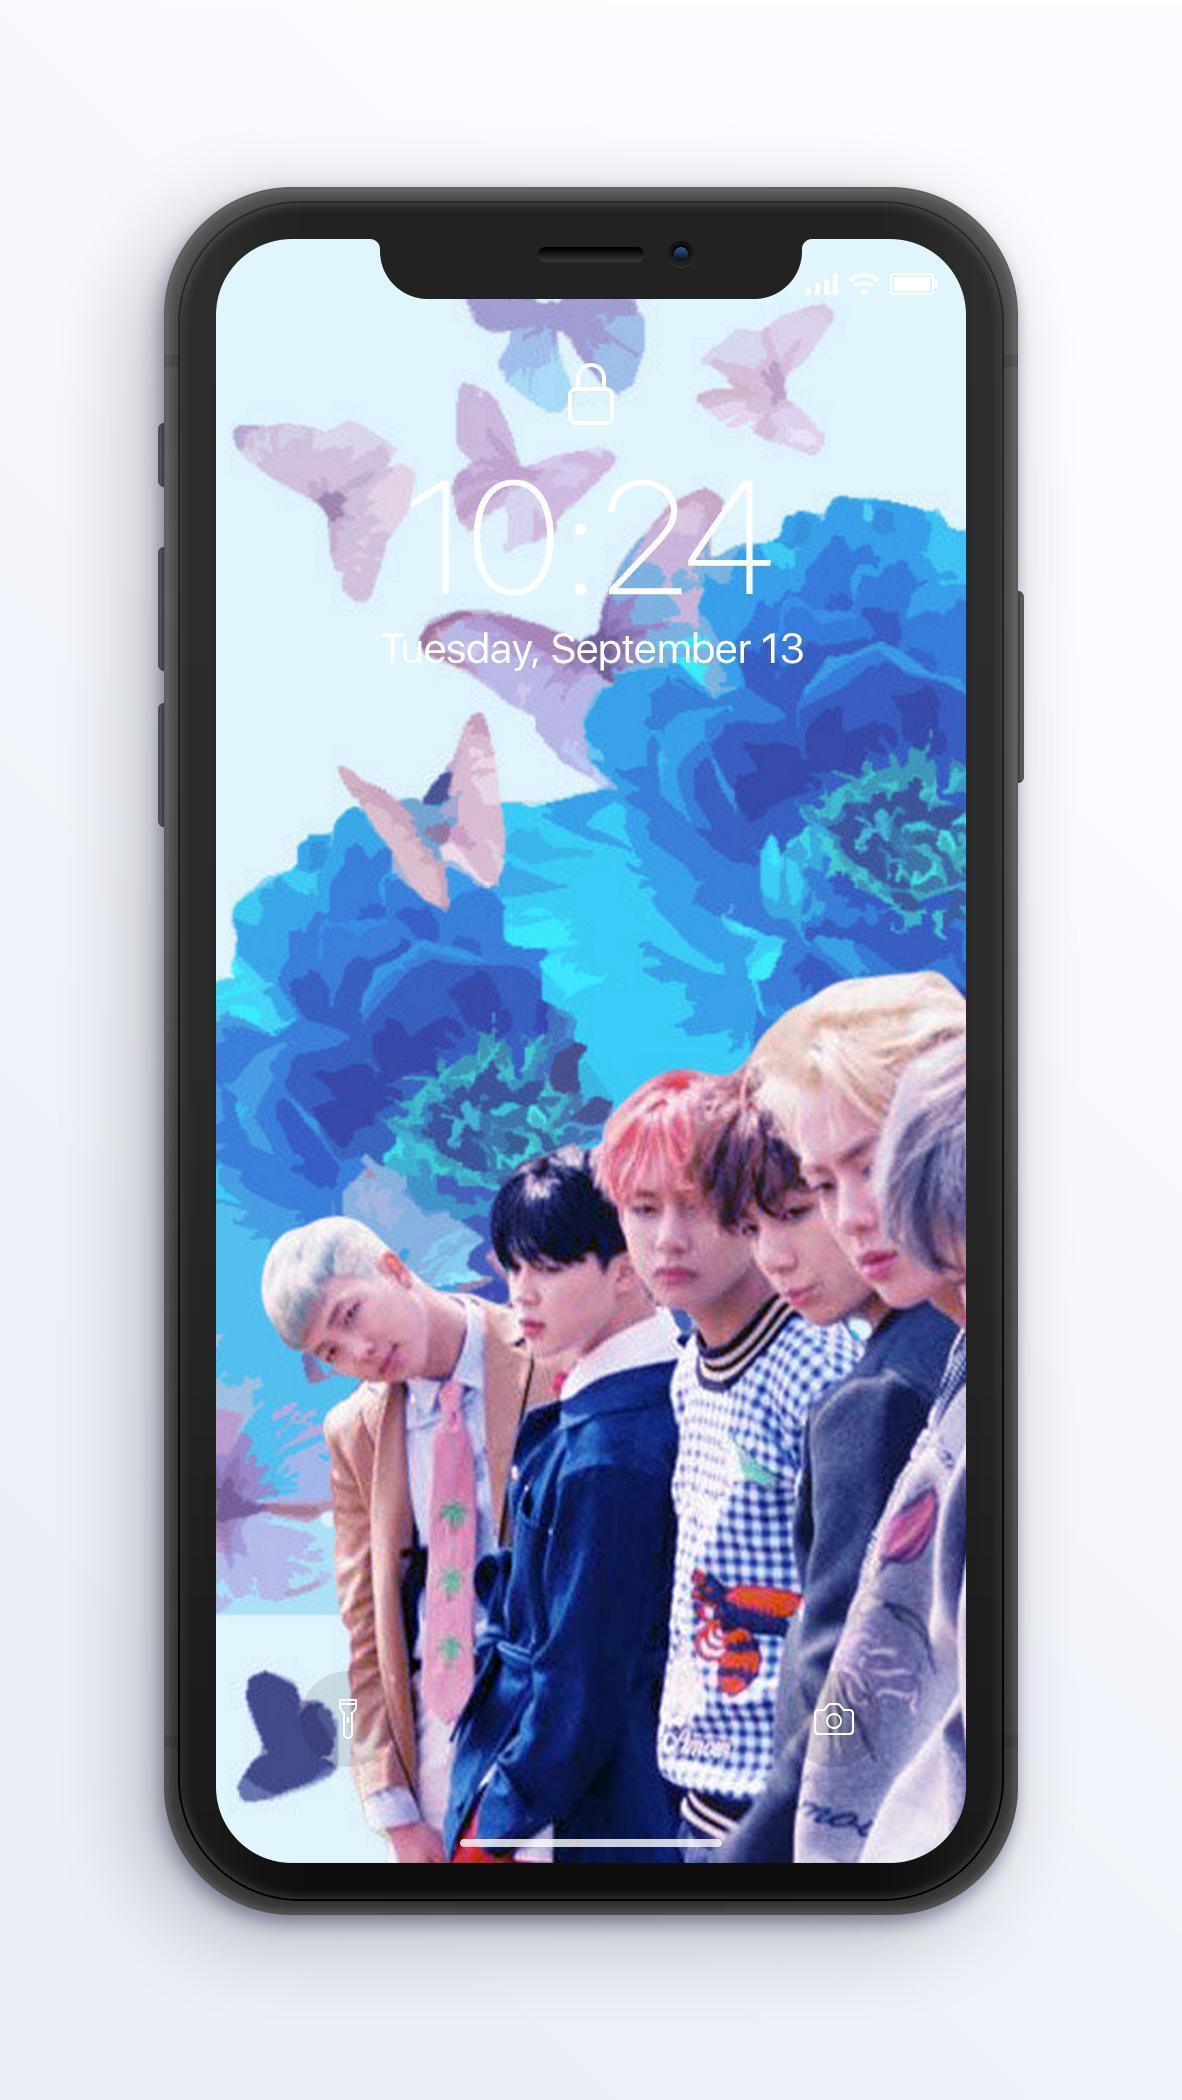 BTS Wallpaper 2020 HD KPOP Backgrounds for Android   APK Download 1182x2100